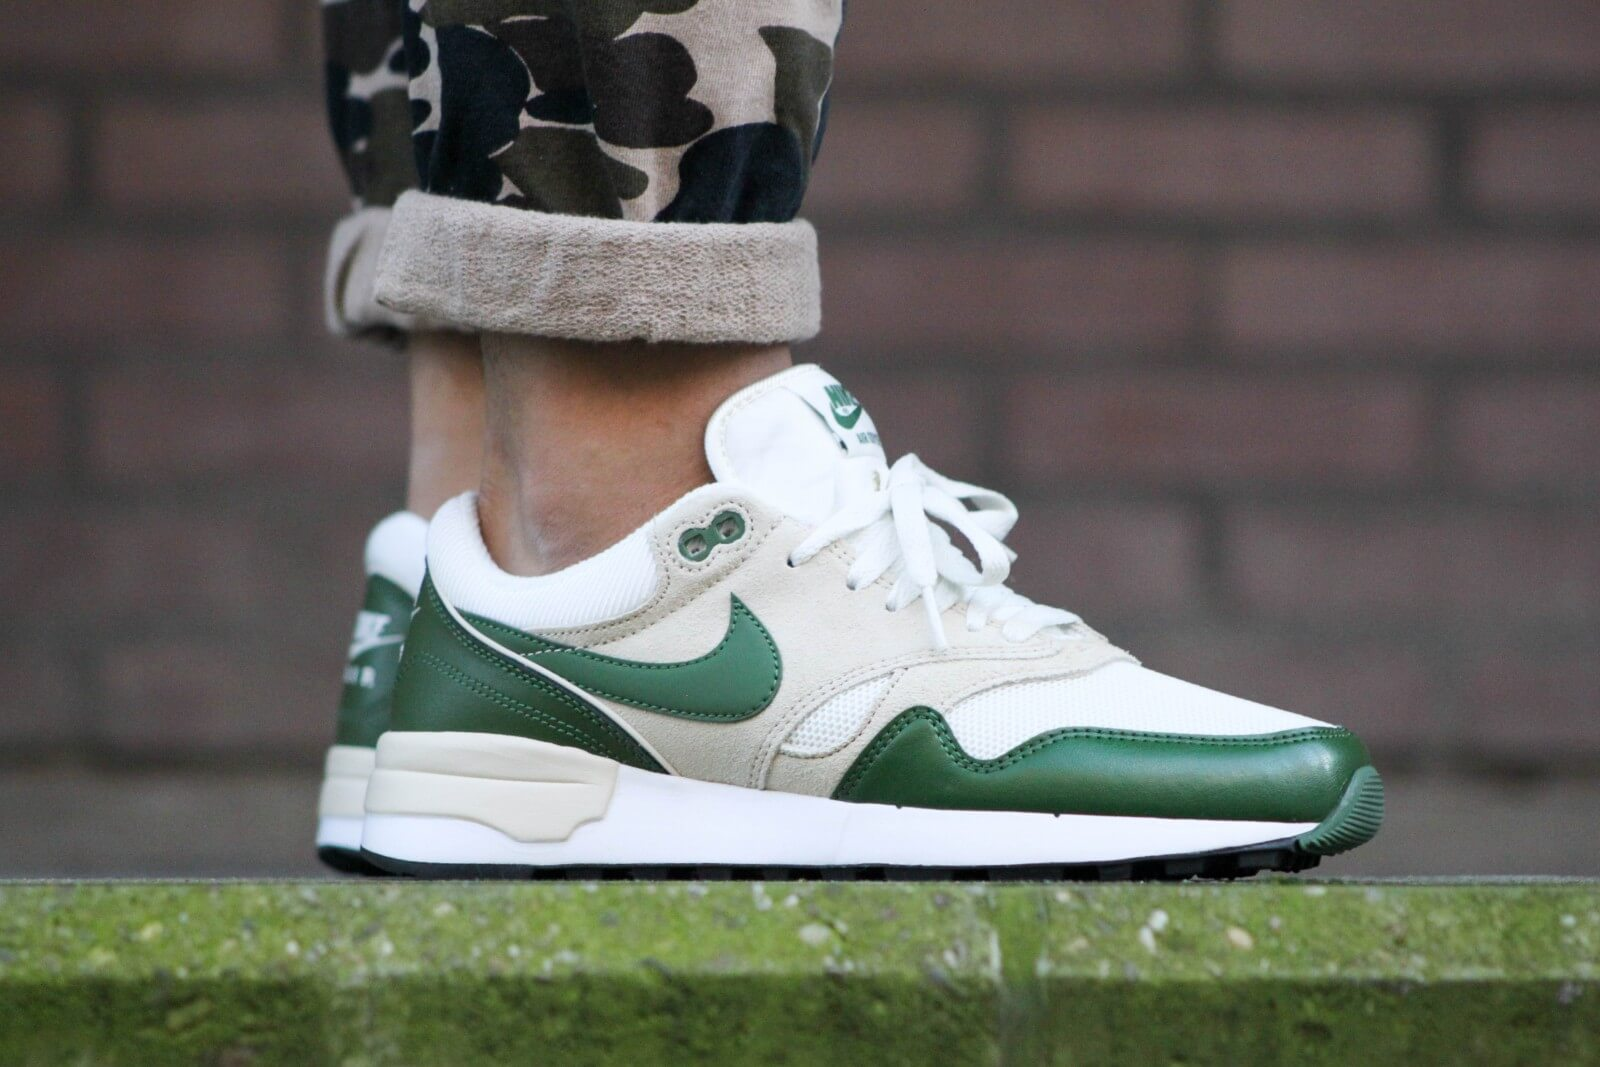 Nike Air Odyssey Forest Green - 652989-103